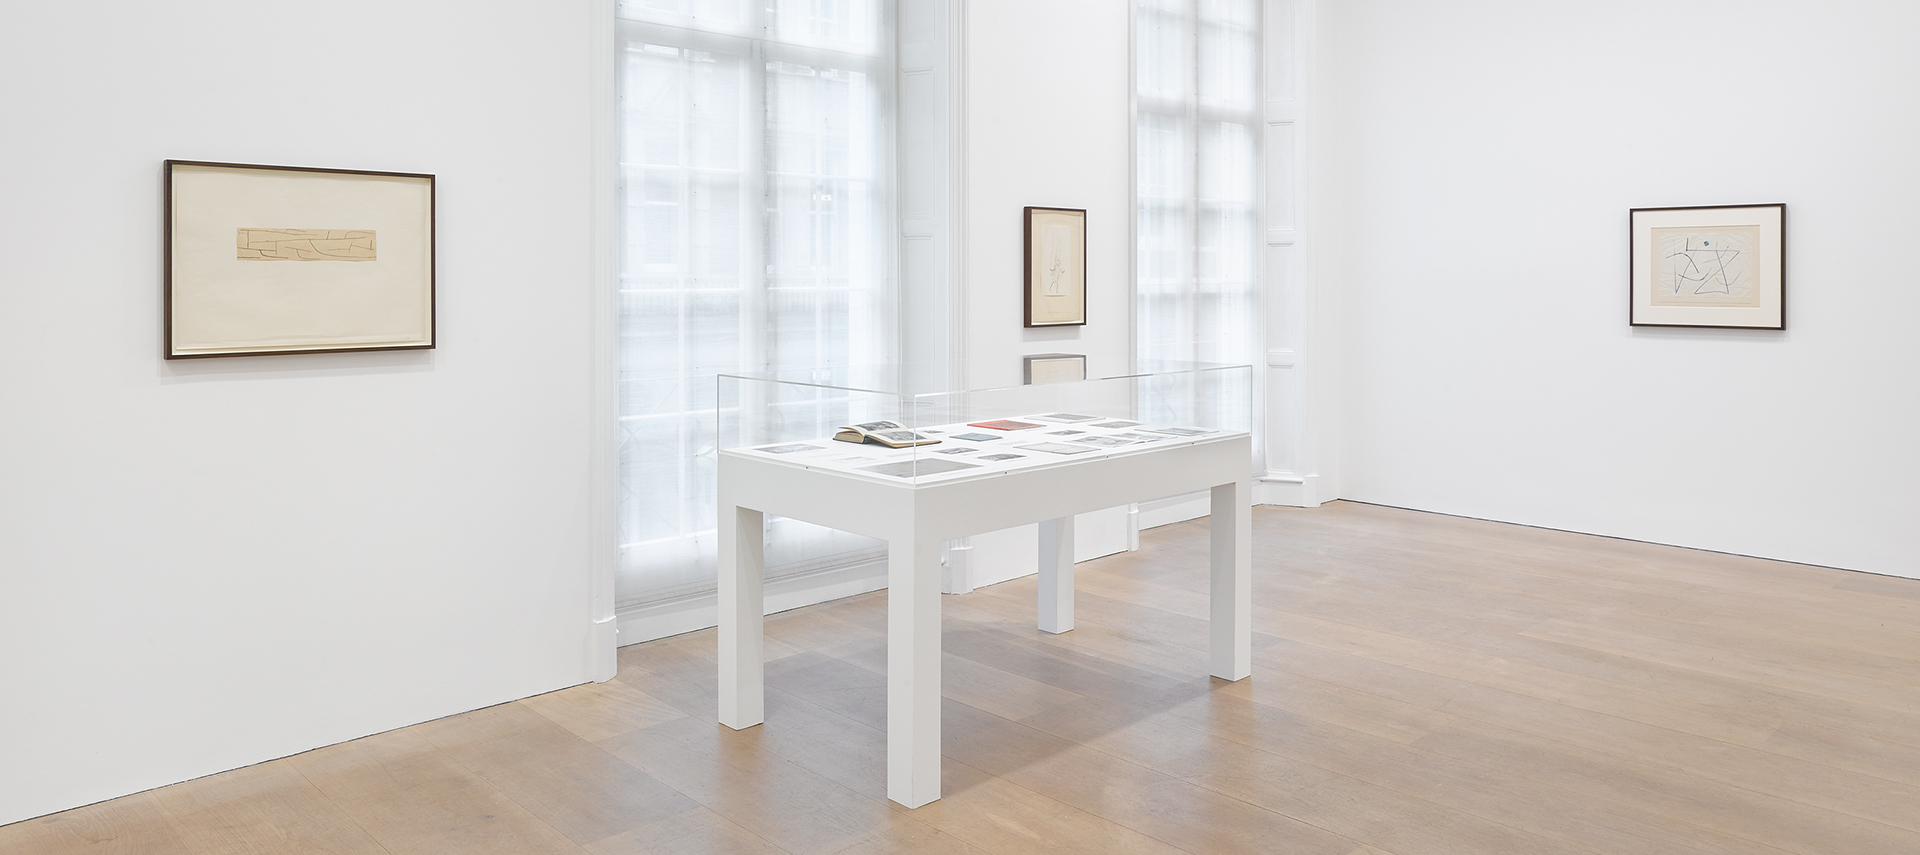 An installation view of the exhibition Paul Klee: Late Klee, at David Zwirner Lonon in 2020.